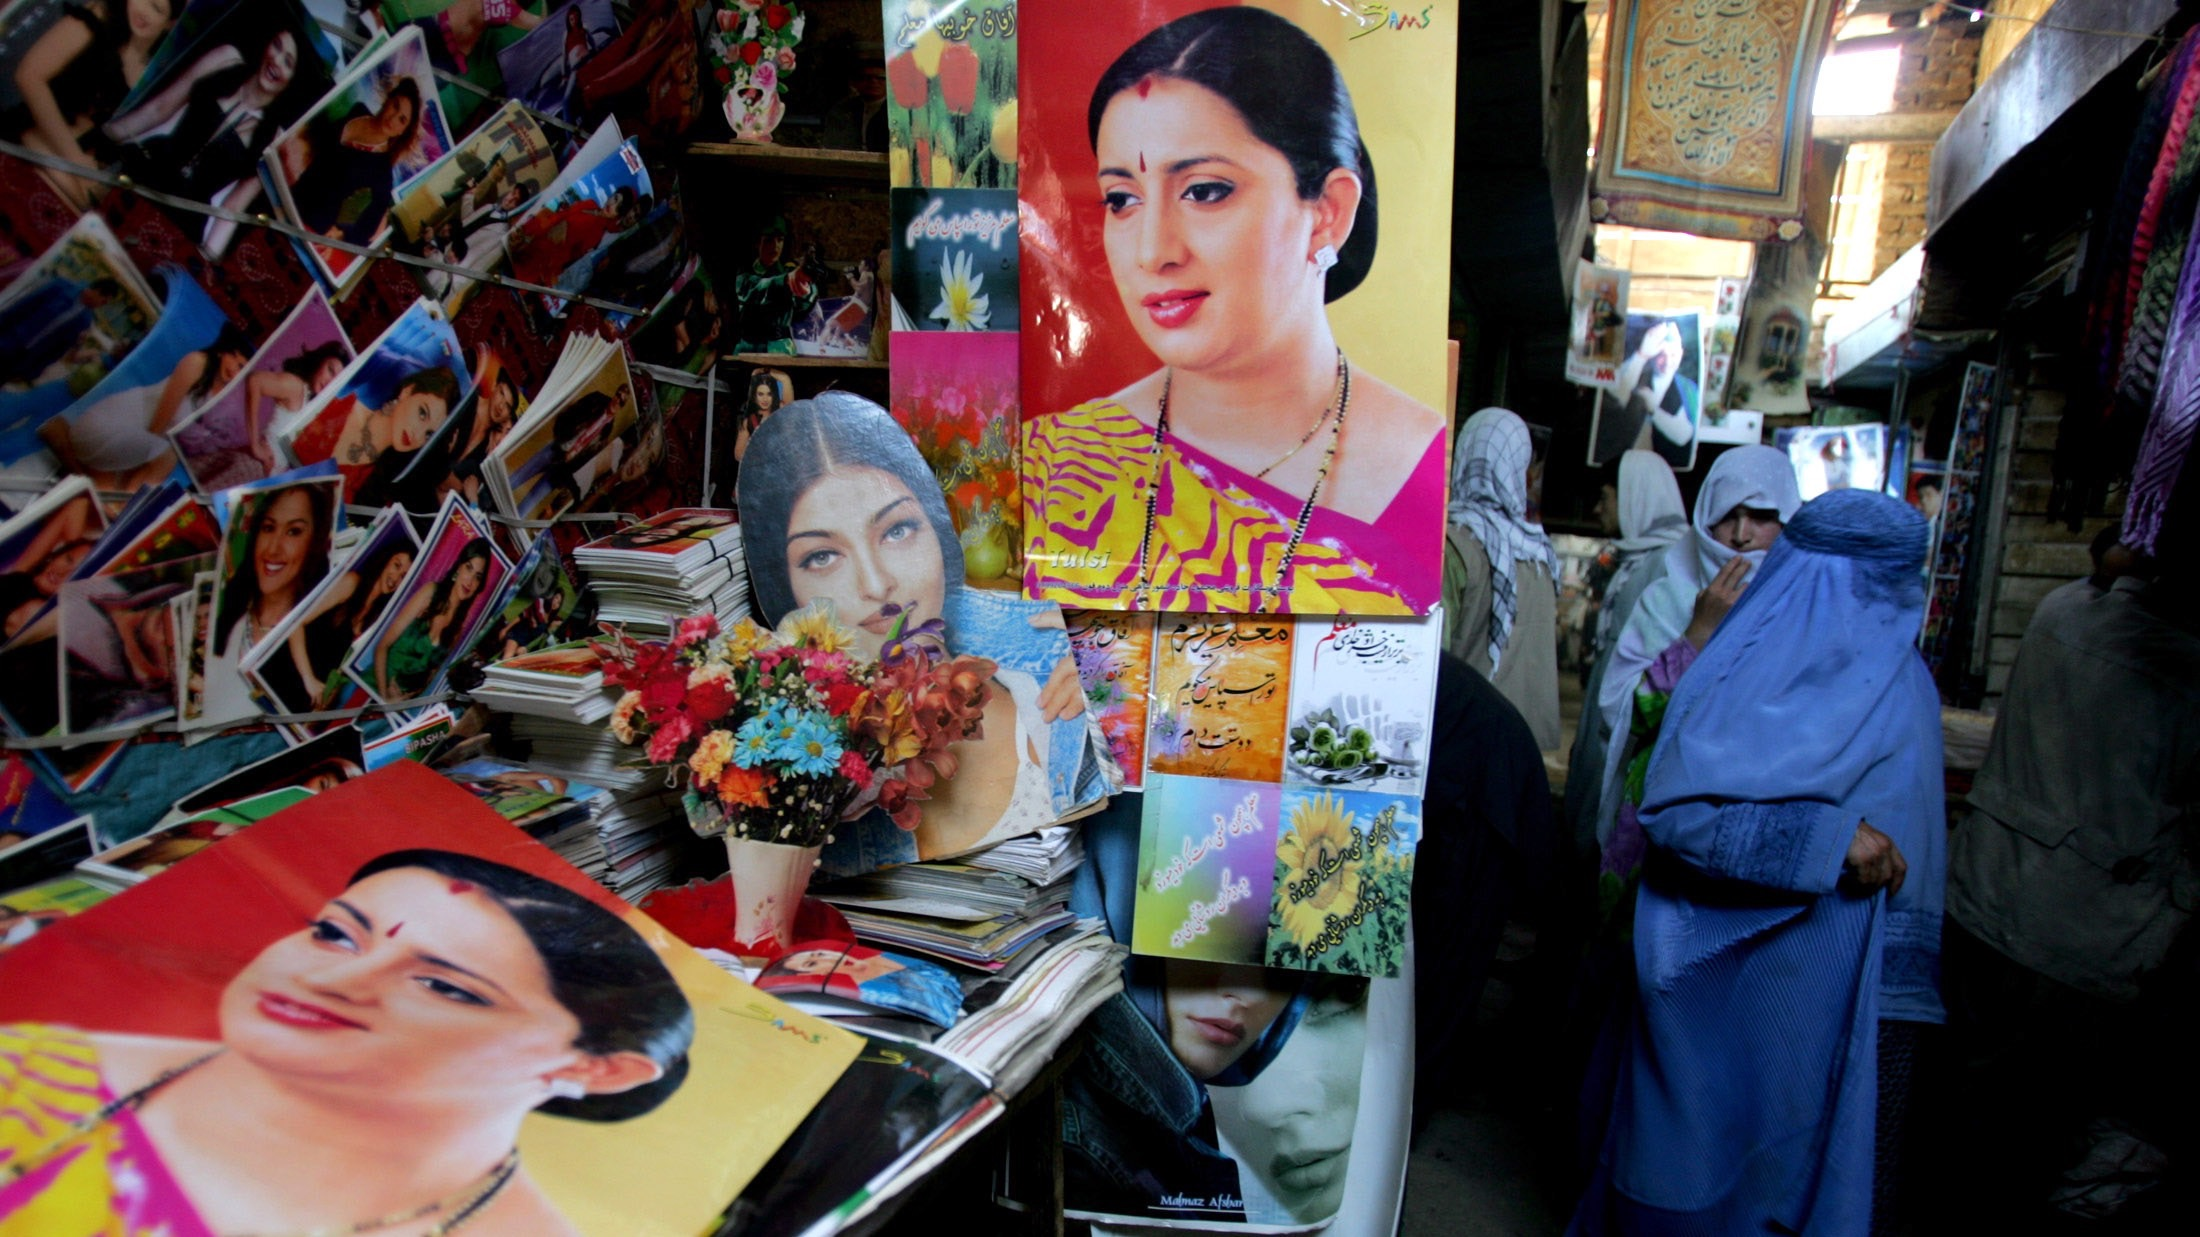 """Posters of Indian actress Smriti Irani who plays Tulsi in the family series called """"Saas Bhi Kabhi Bahu Thi"""" are on sale at a market in Kabul, Afghanistan May 14, 2006. The television drama is hugely popular in Afghanistan, where for the first time after decades of war, people are able to see a series that explores many of the issues they encounter in their own lives. Picture taken May 14, 2006. To match feature AFGHAN-SOAPOPERA   REUTERS/Ahmad Masood - RTR1DG0Q"""